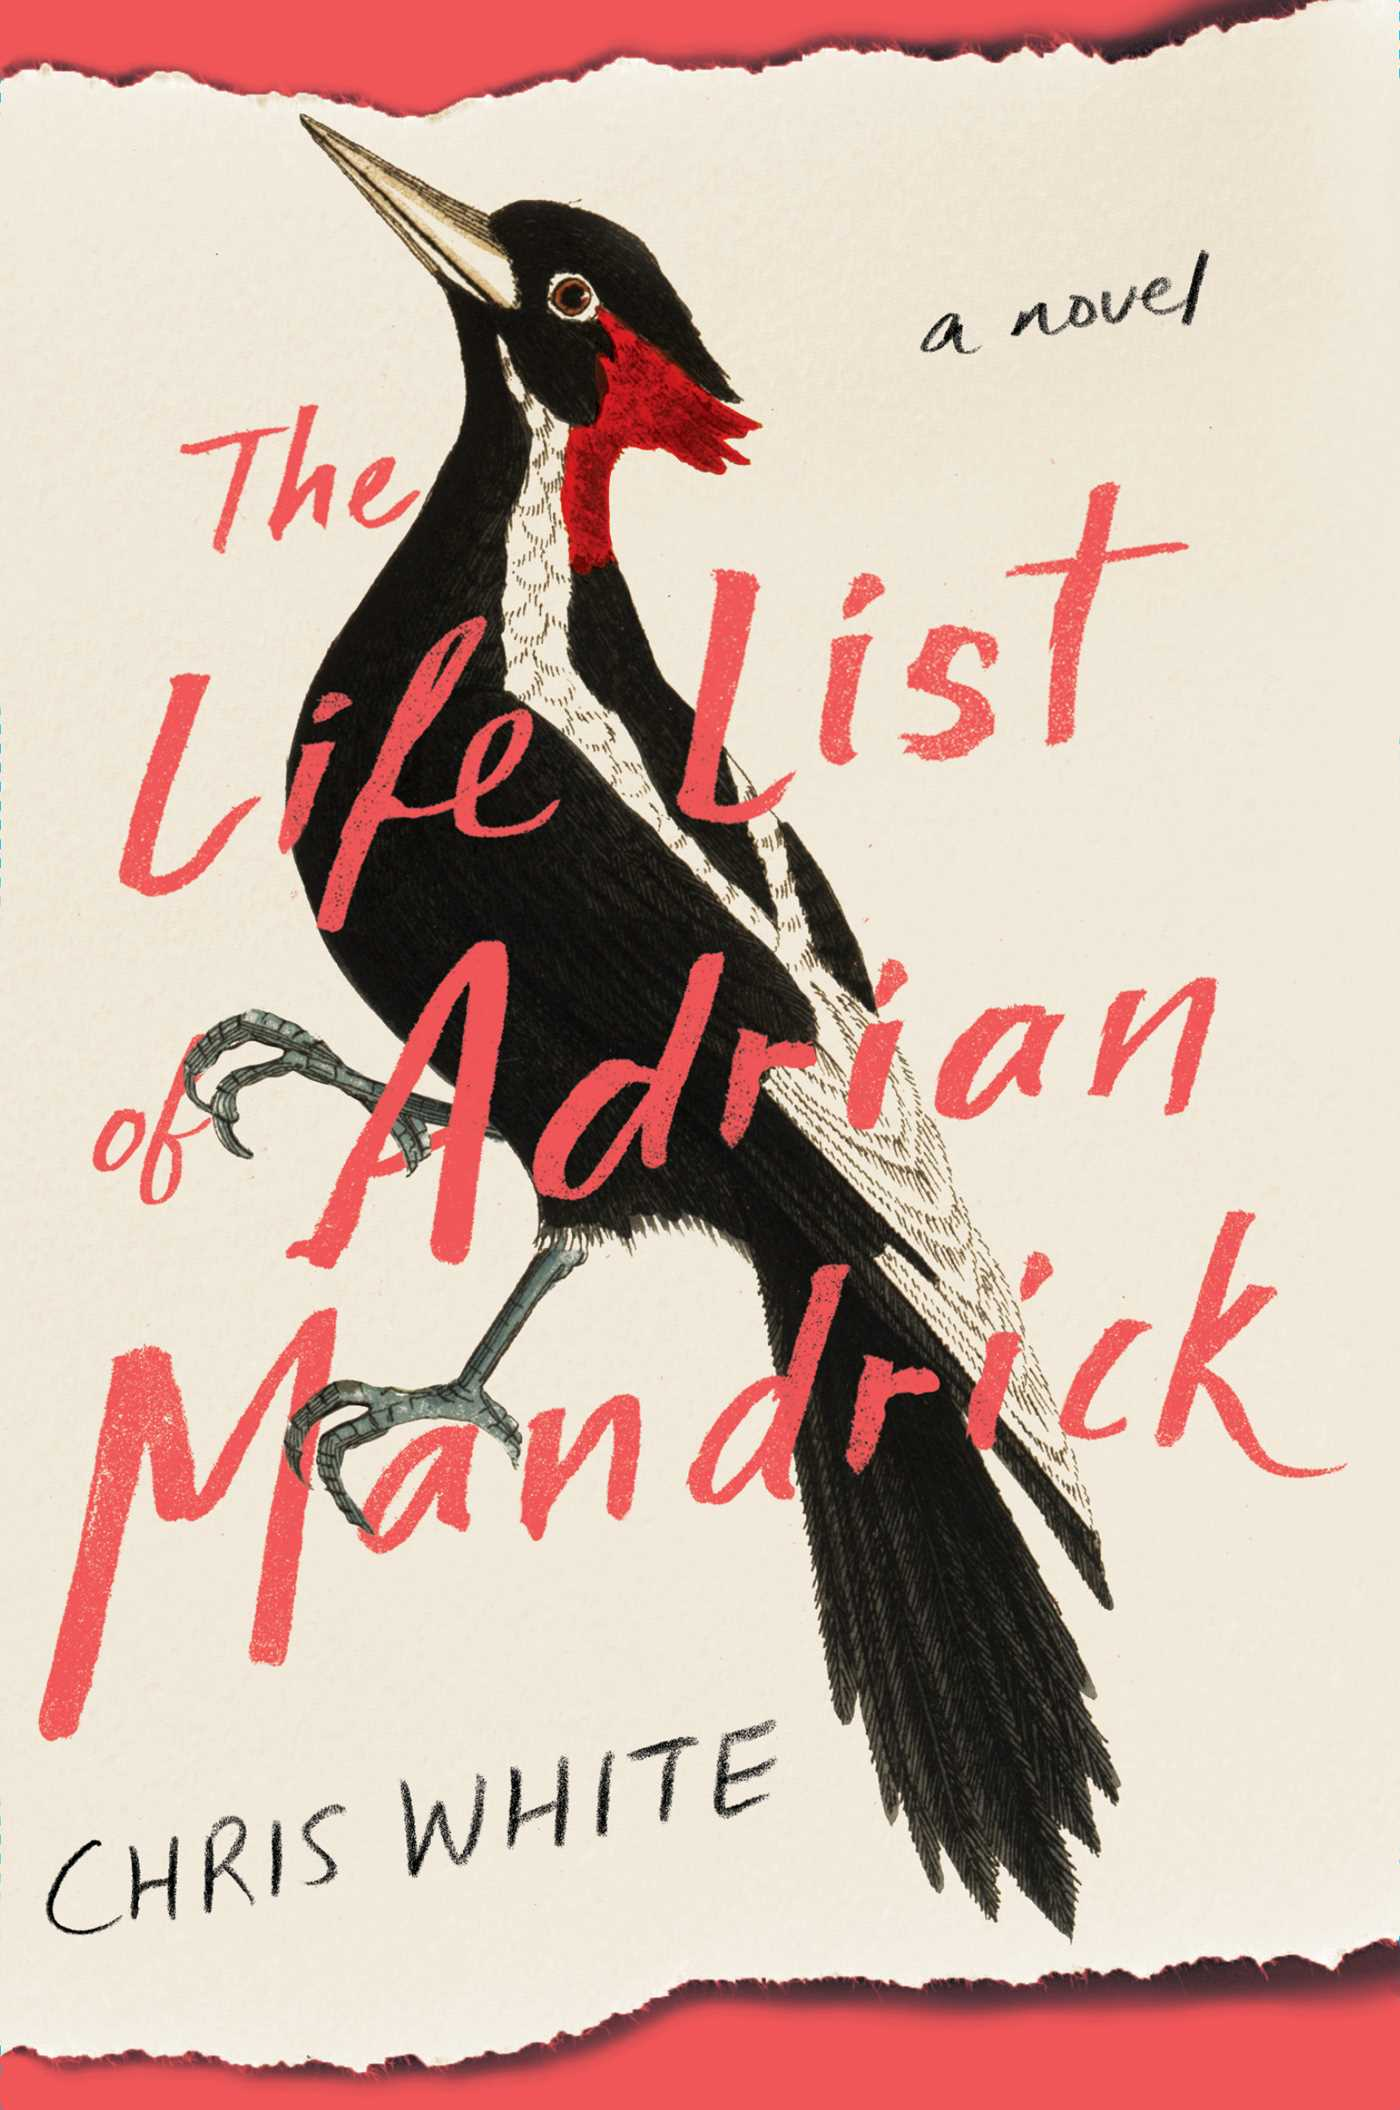 The life list of adrian mandrick 9781501174308 hr